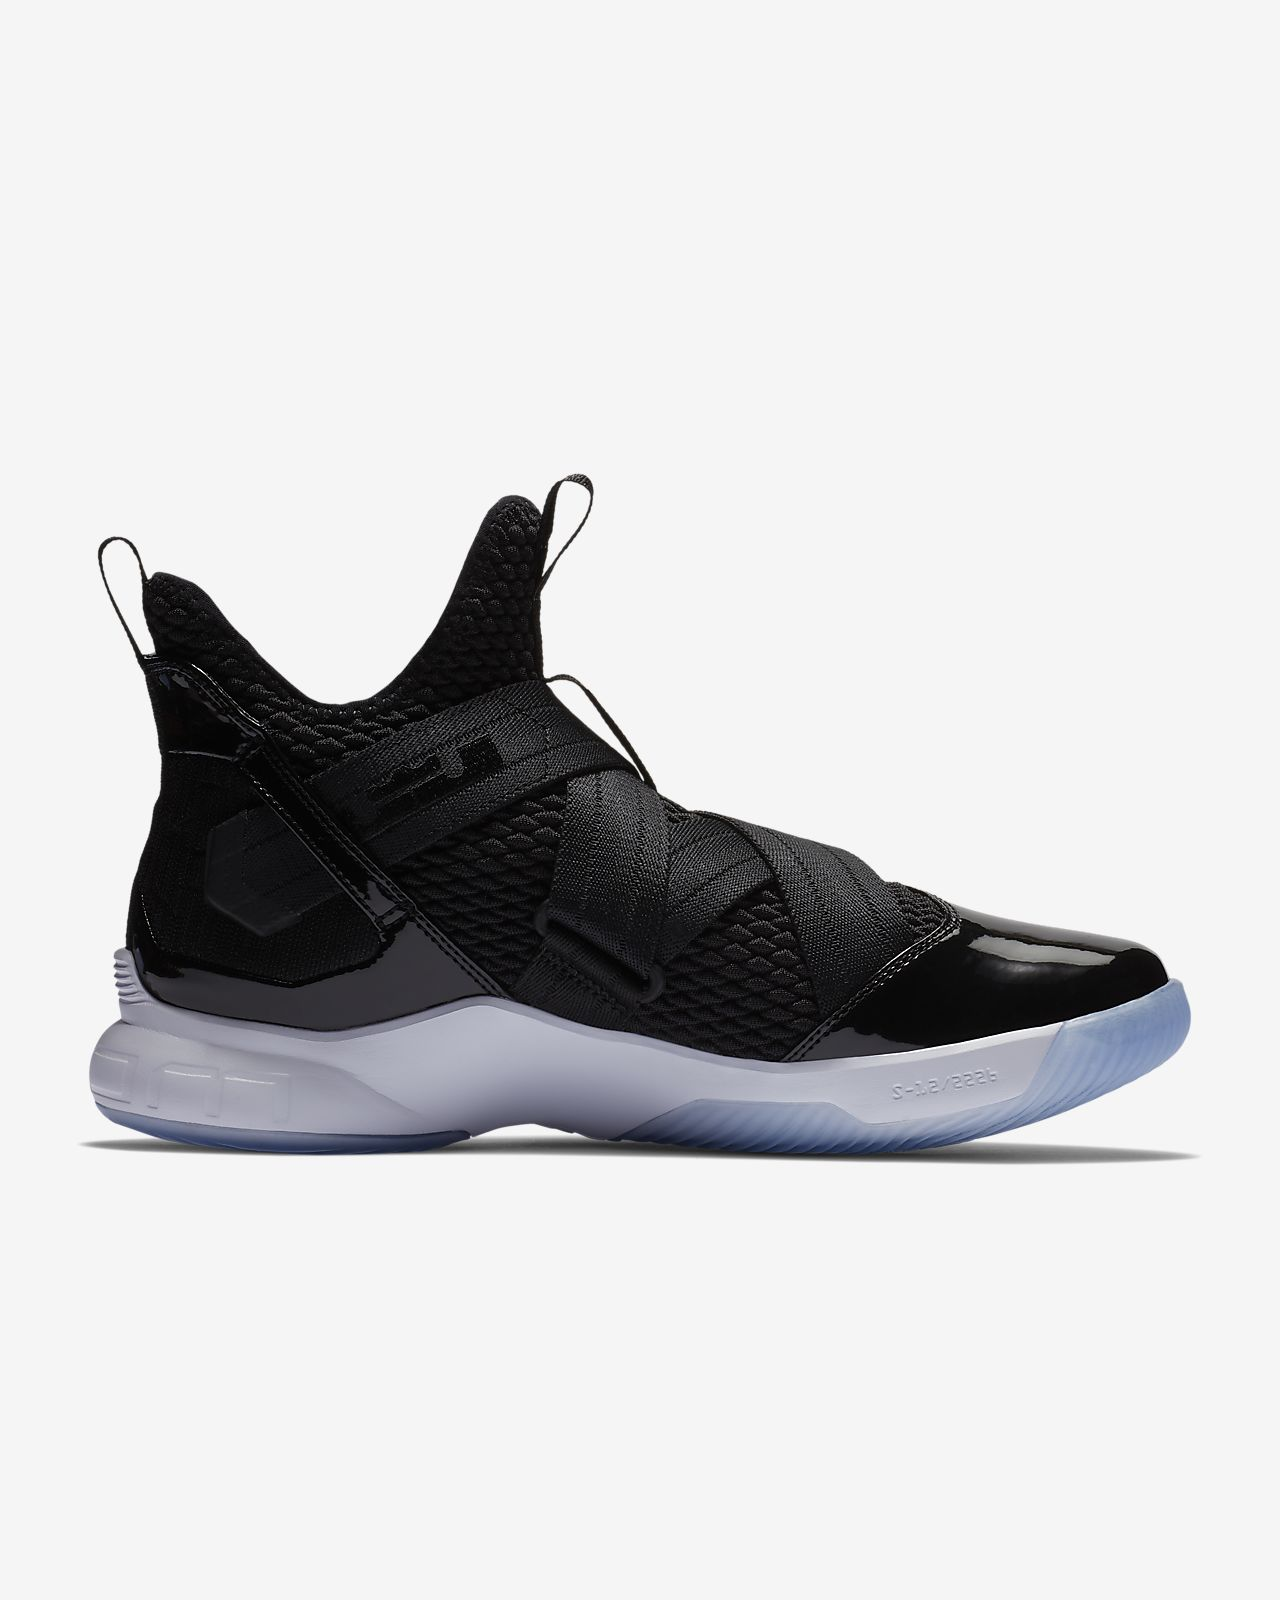 wholesale dealer dc942 f08c6 ... LeBron Soldier 12 SFG Basketball Shoe